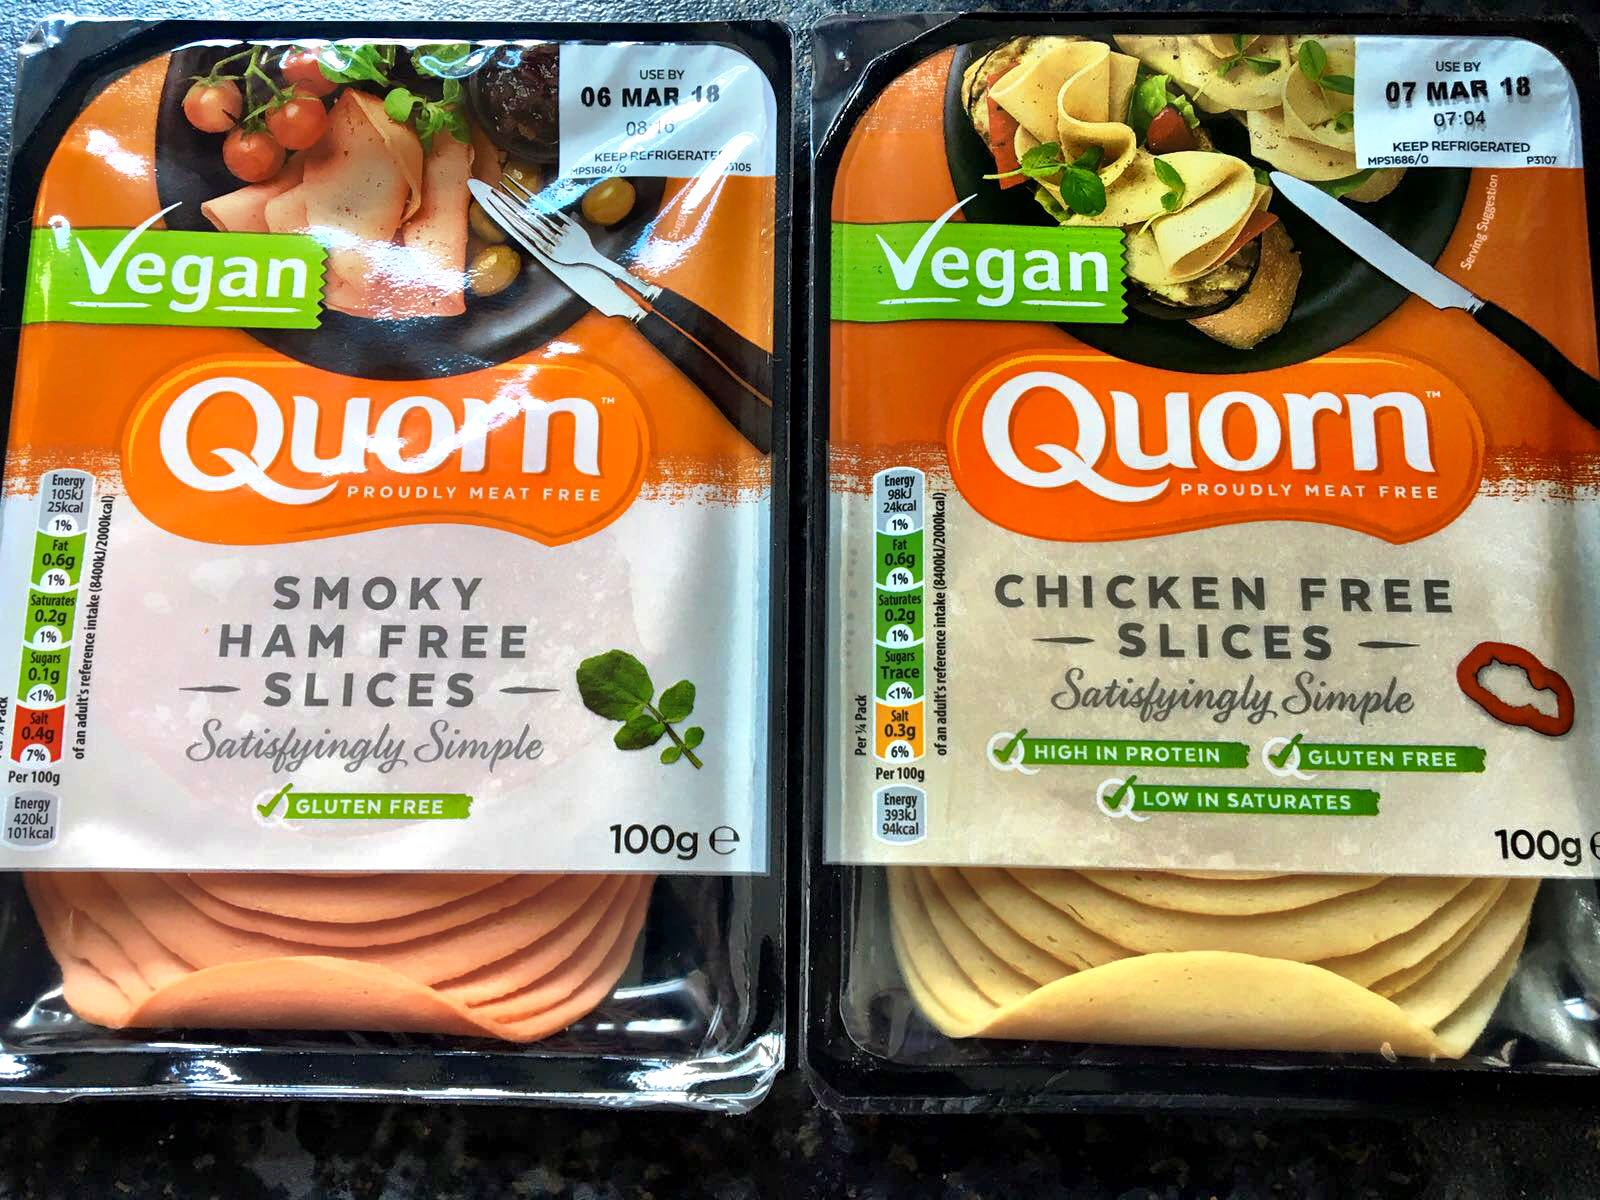 Quorn Launches Vegan Deli Line